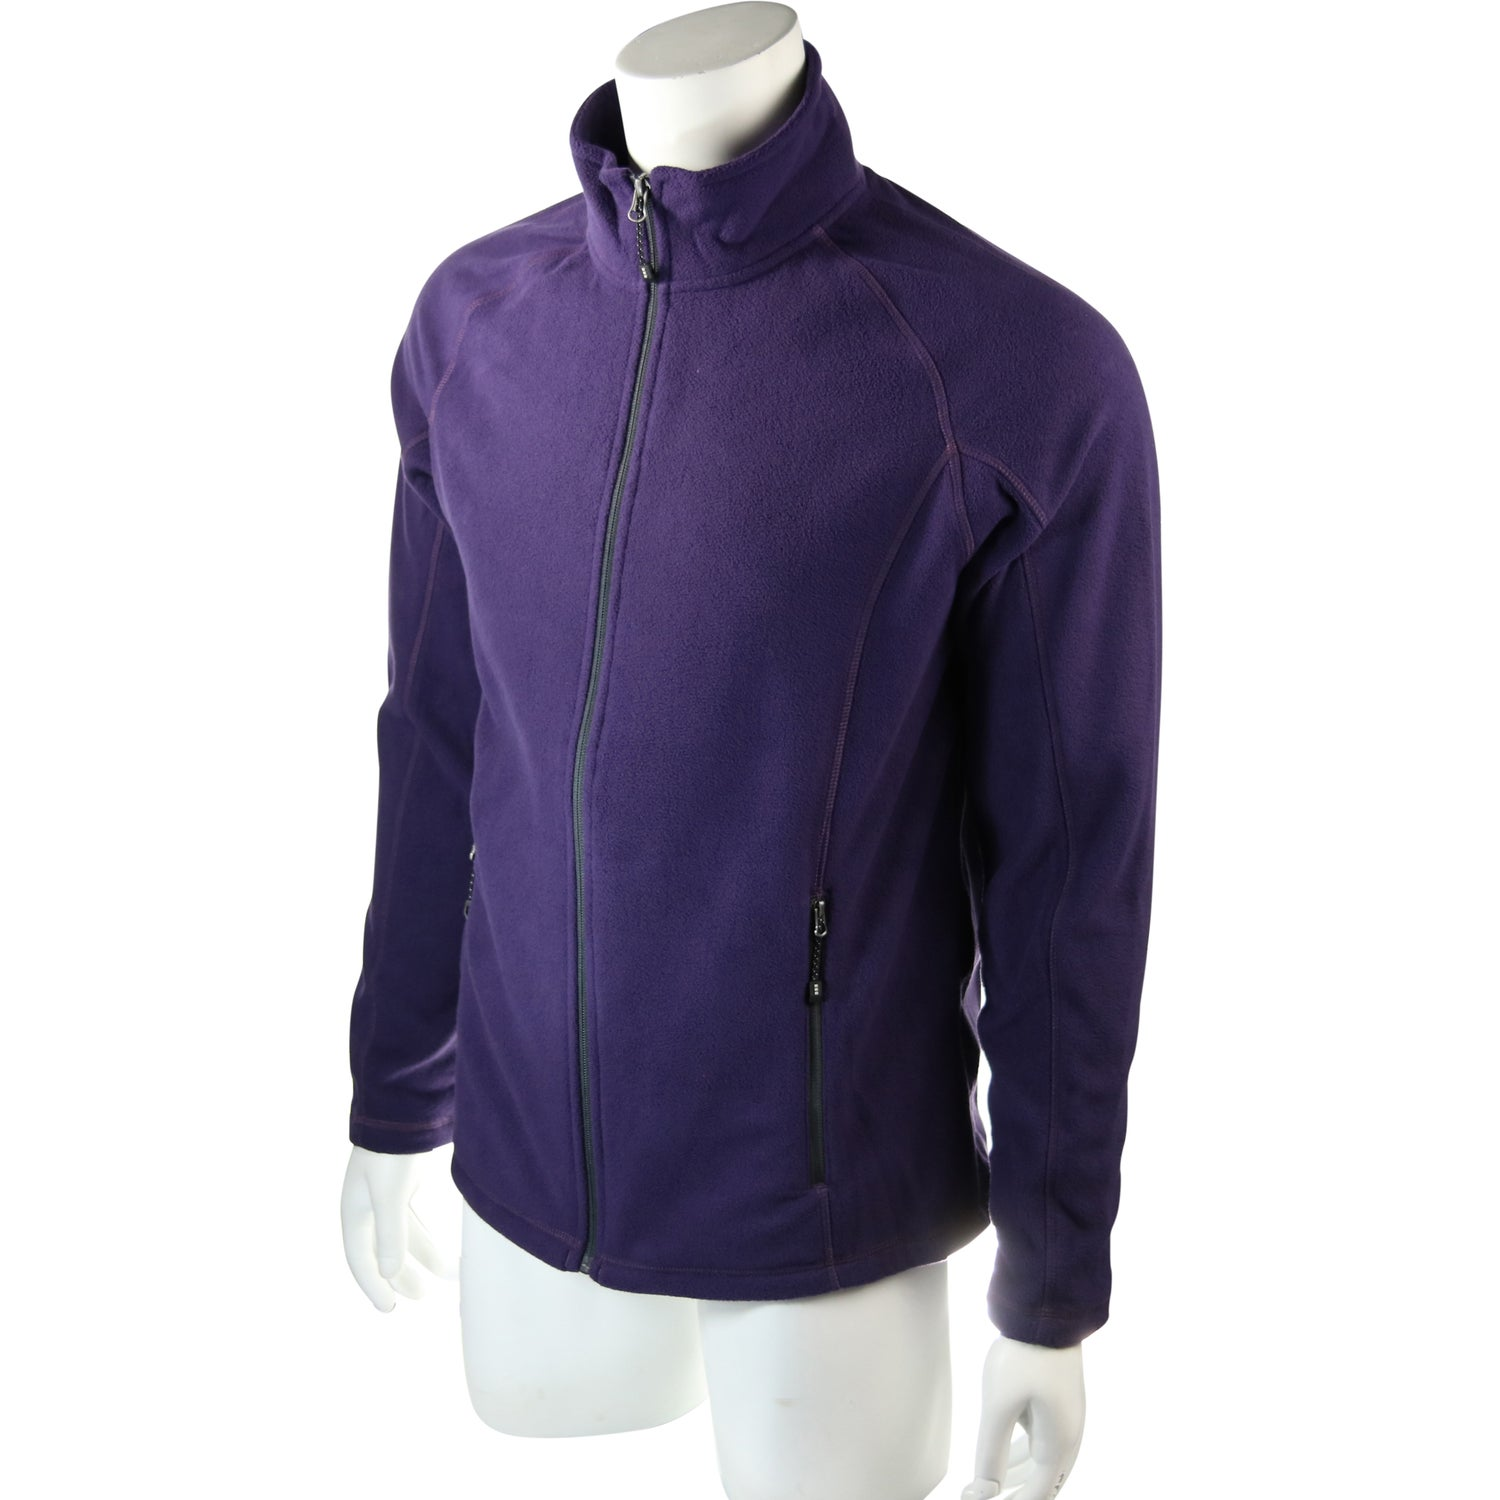 hot sale online d500c a765a CLICK HERE to Order Men s Rixford Polyfleece Jacket by TRIMARKs Printed  with Your Logo for  25.10 Ea.